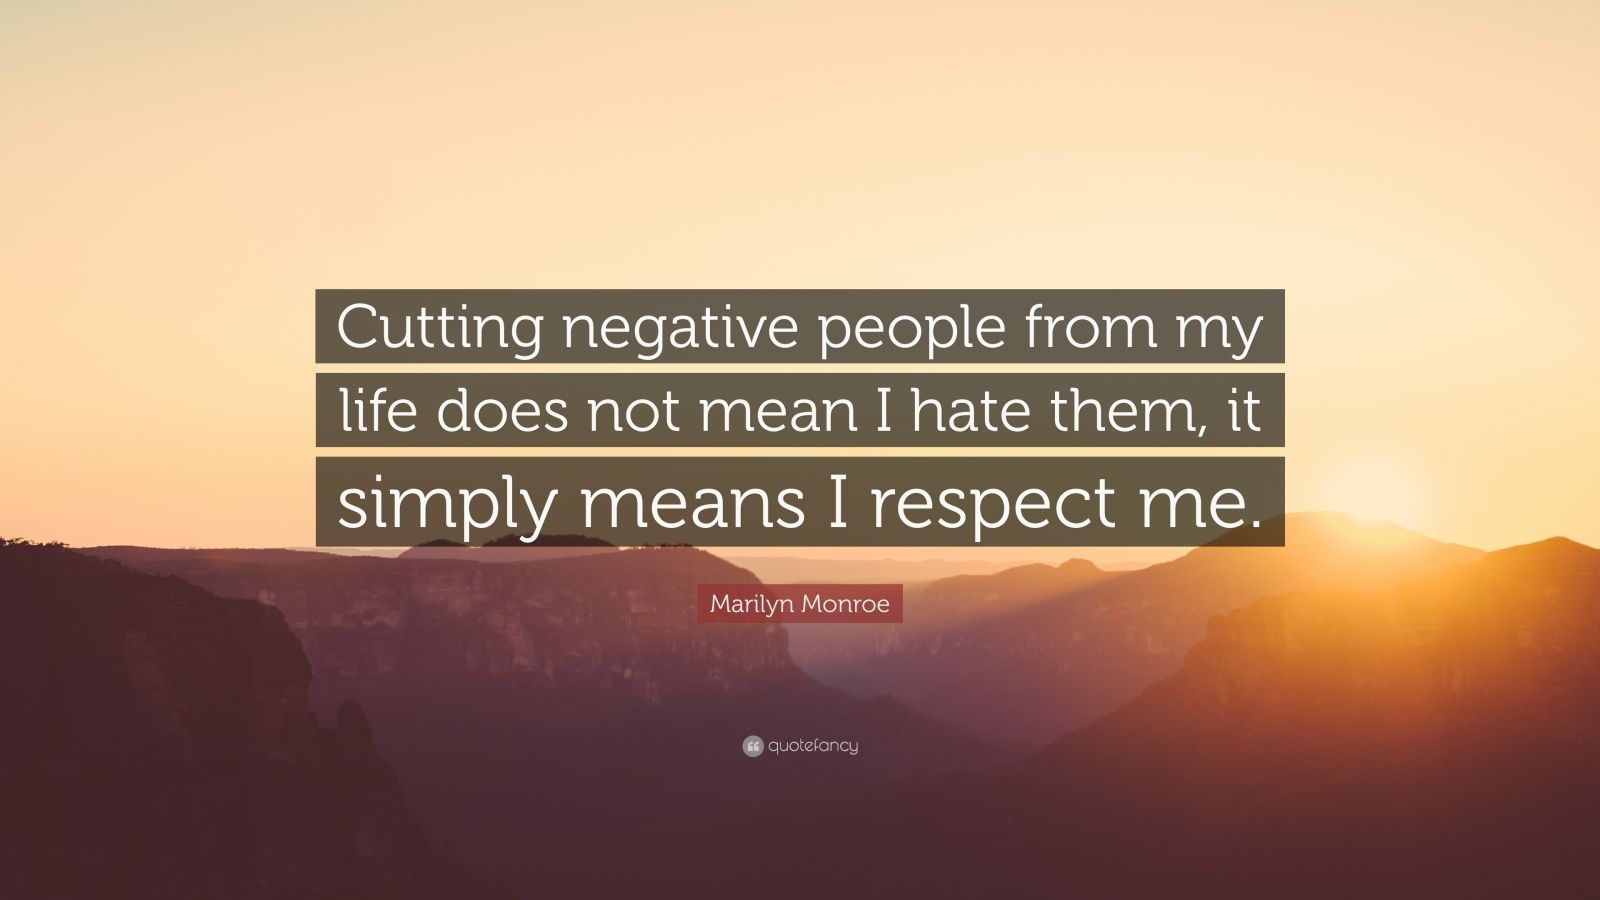 """Marilyn Monroe Quote: """"Cutting negative people from my life does not mean I hate them, it simply means I respect me."""""""